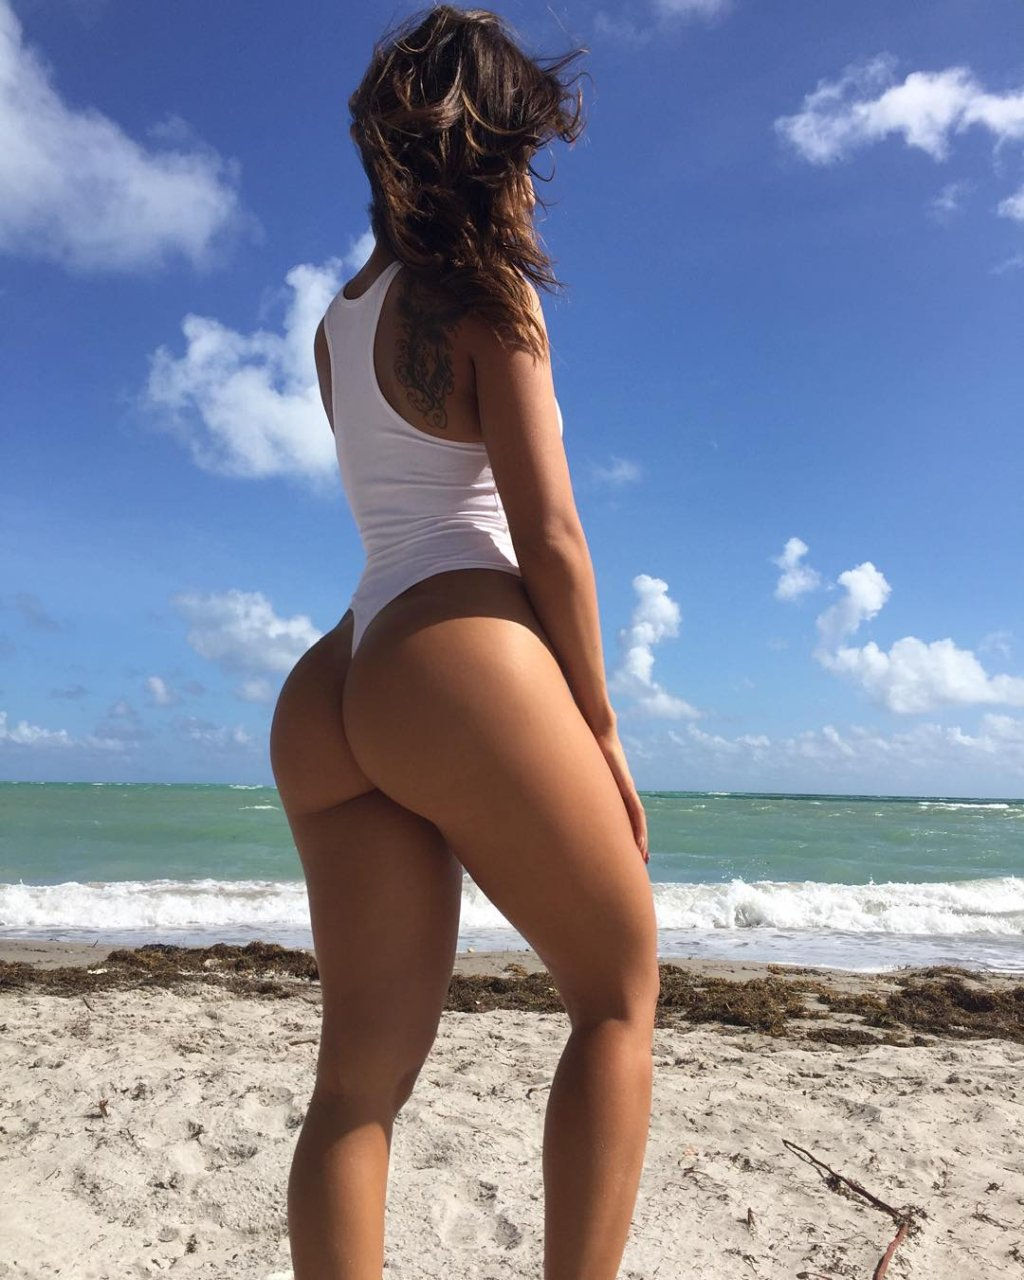 tianna gregory pictures